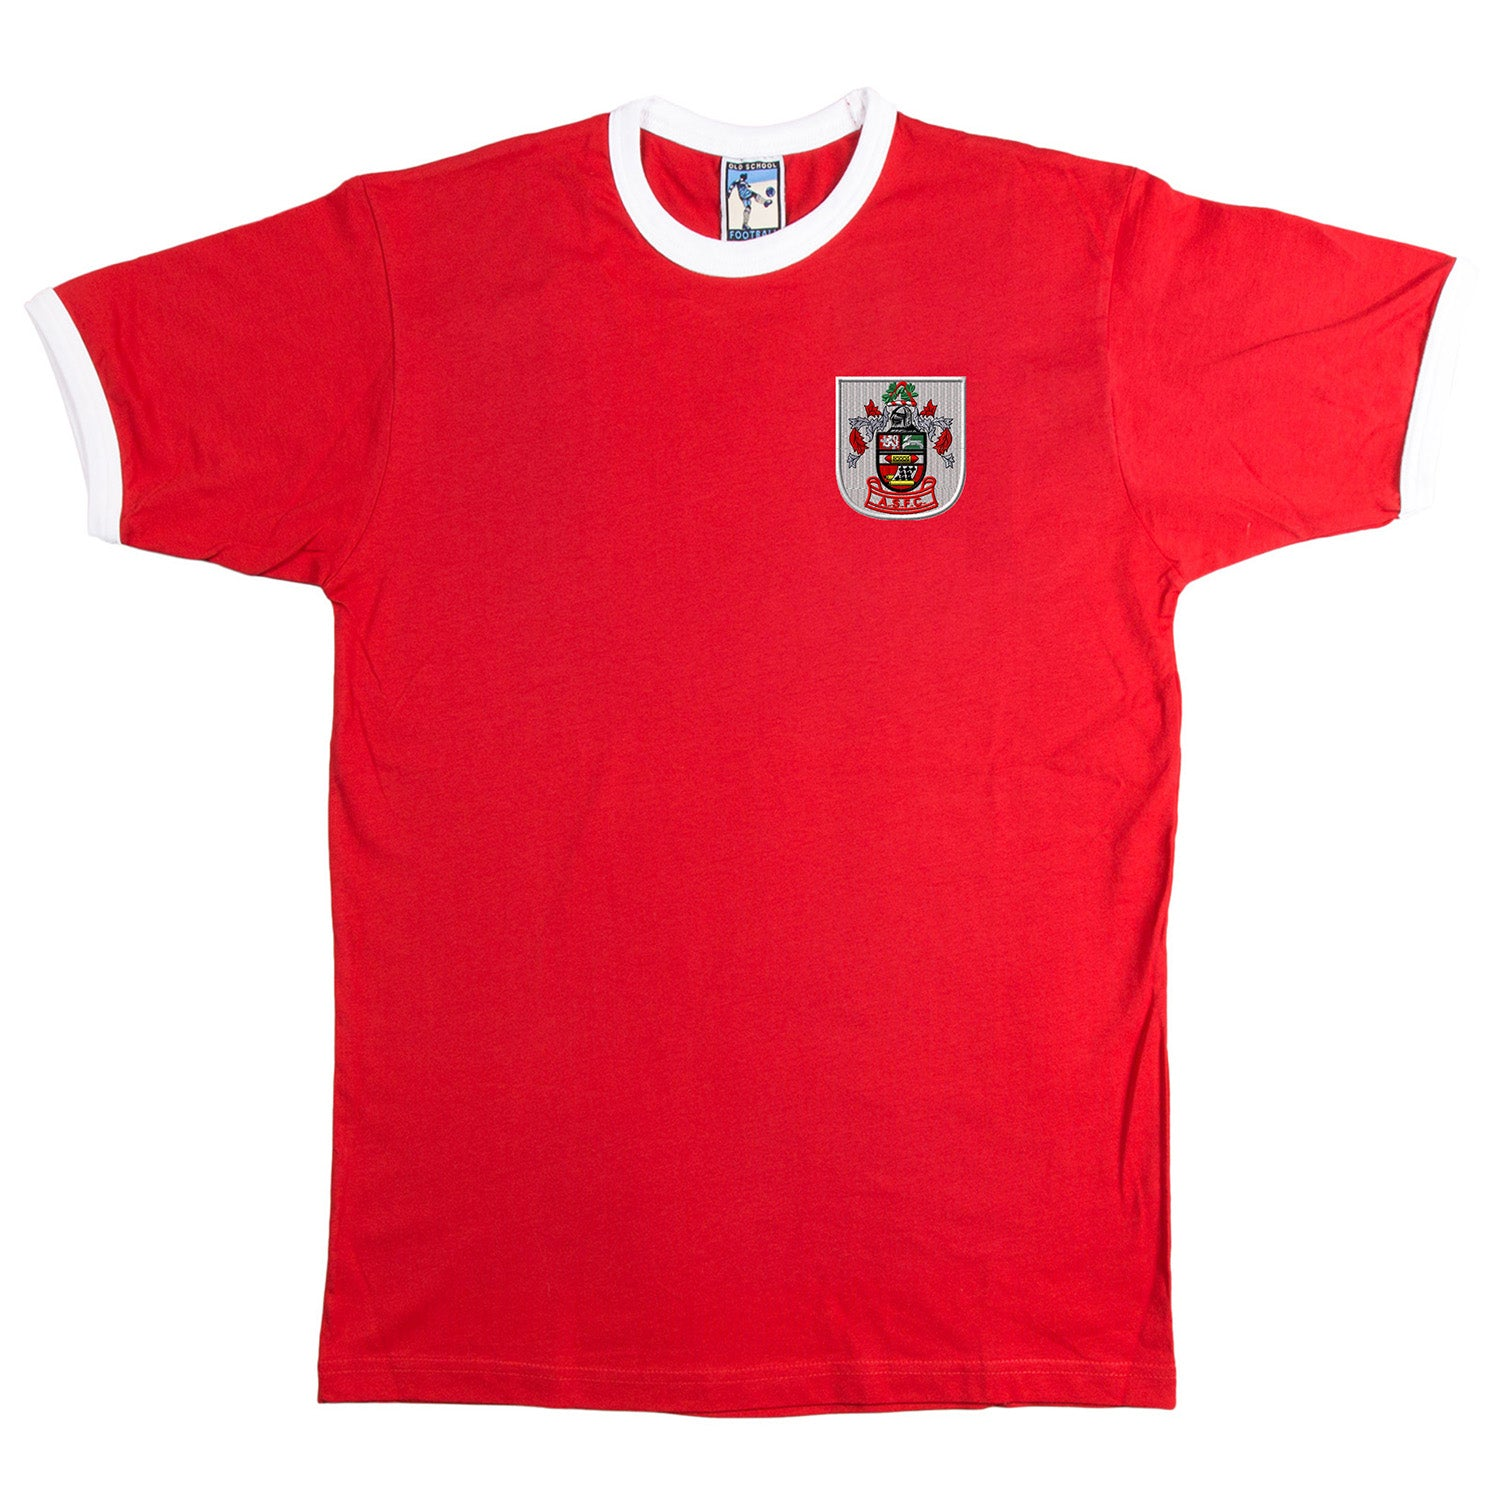 Accrington Stanley Retro Football T Shirt 1950s - T-shirt